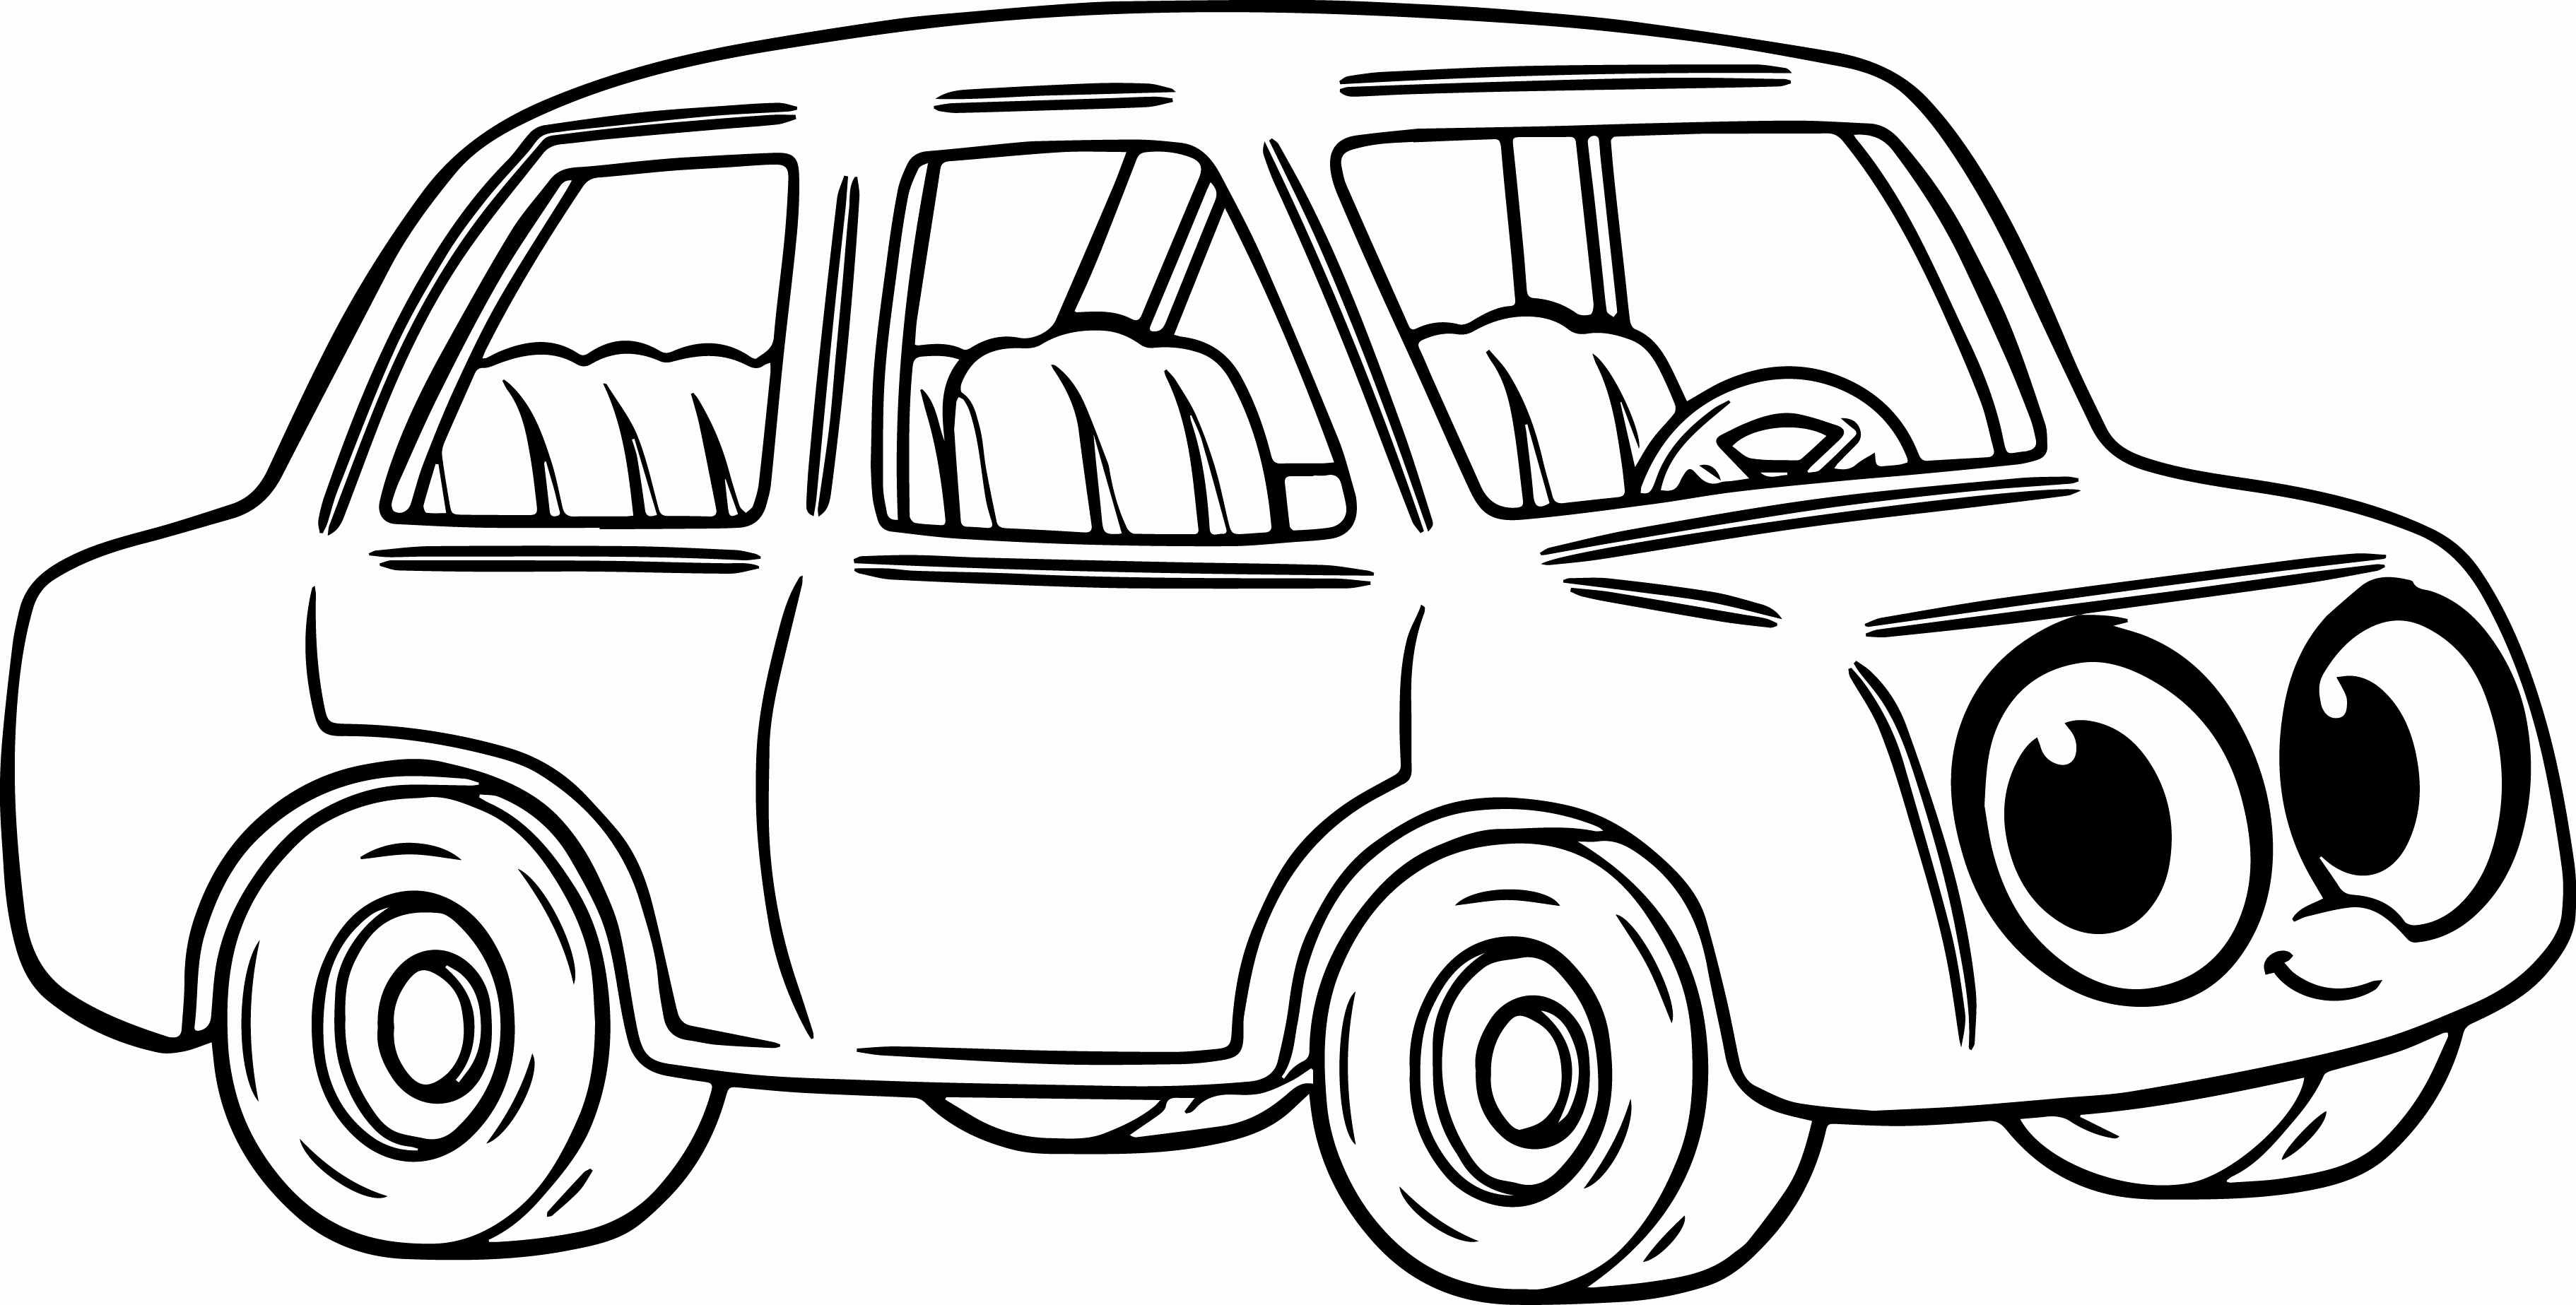 colouring cars muscle car coloring pages to download and print for free cars colouring